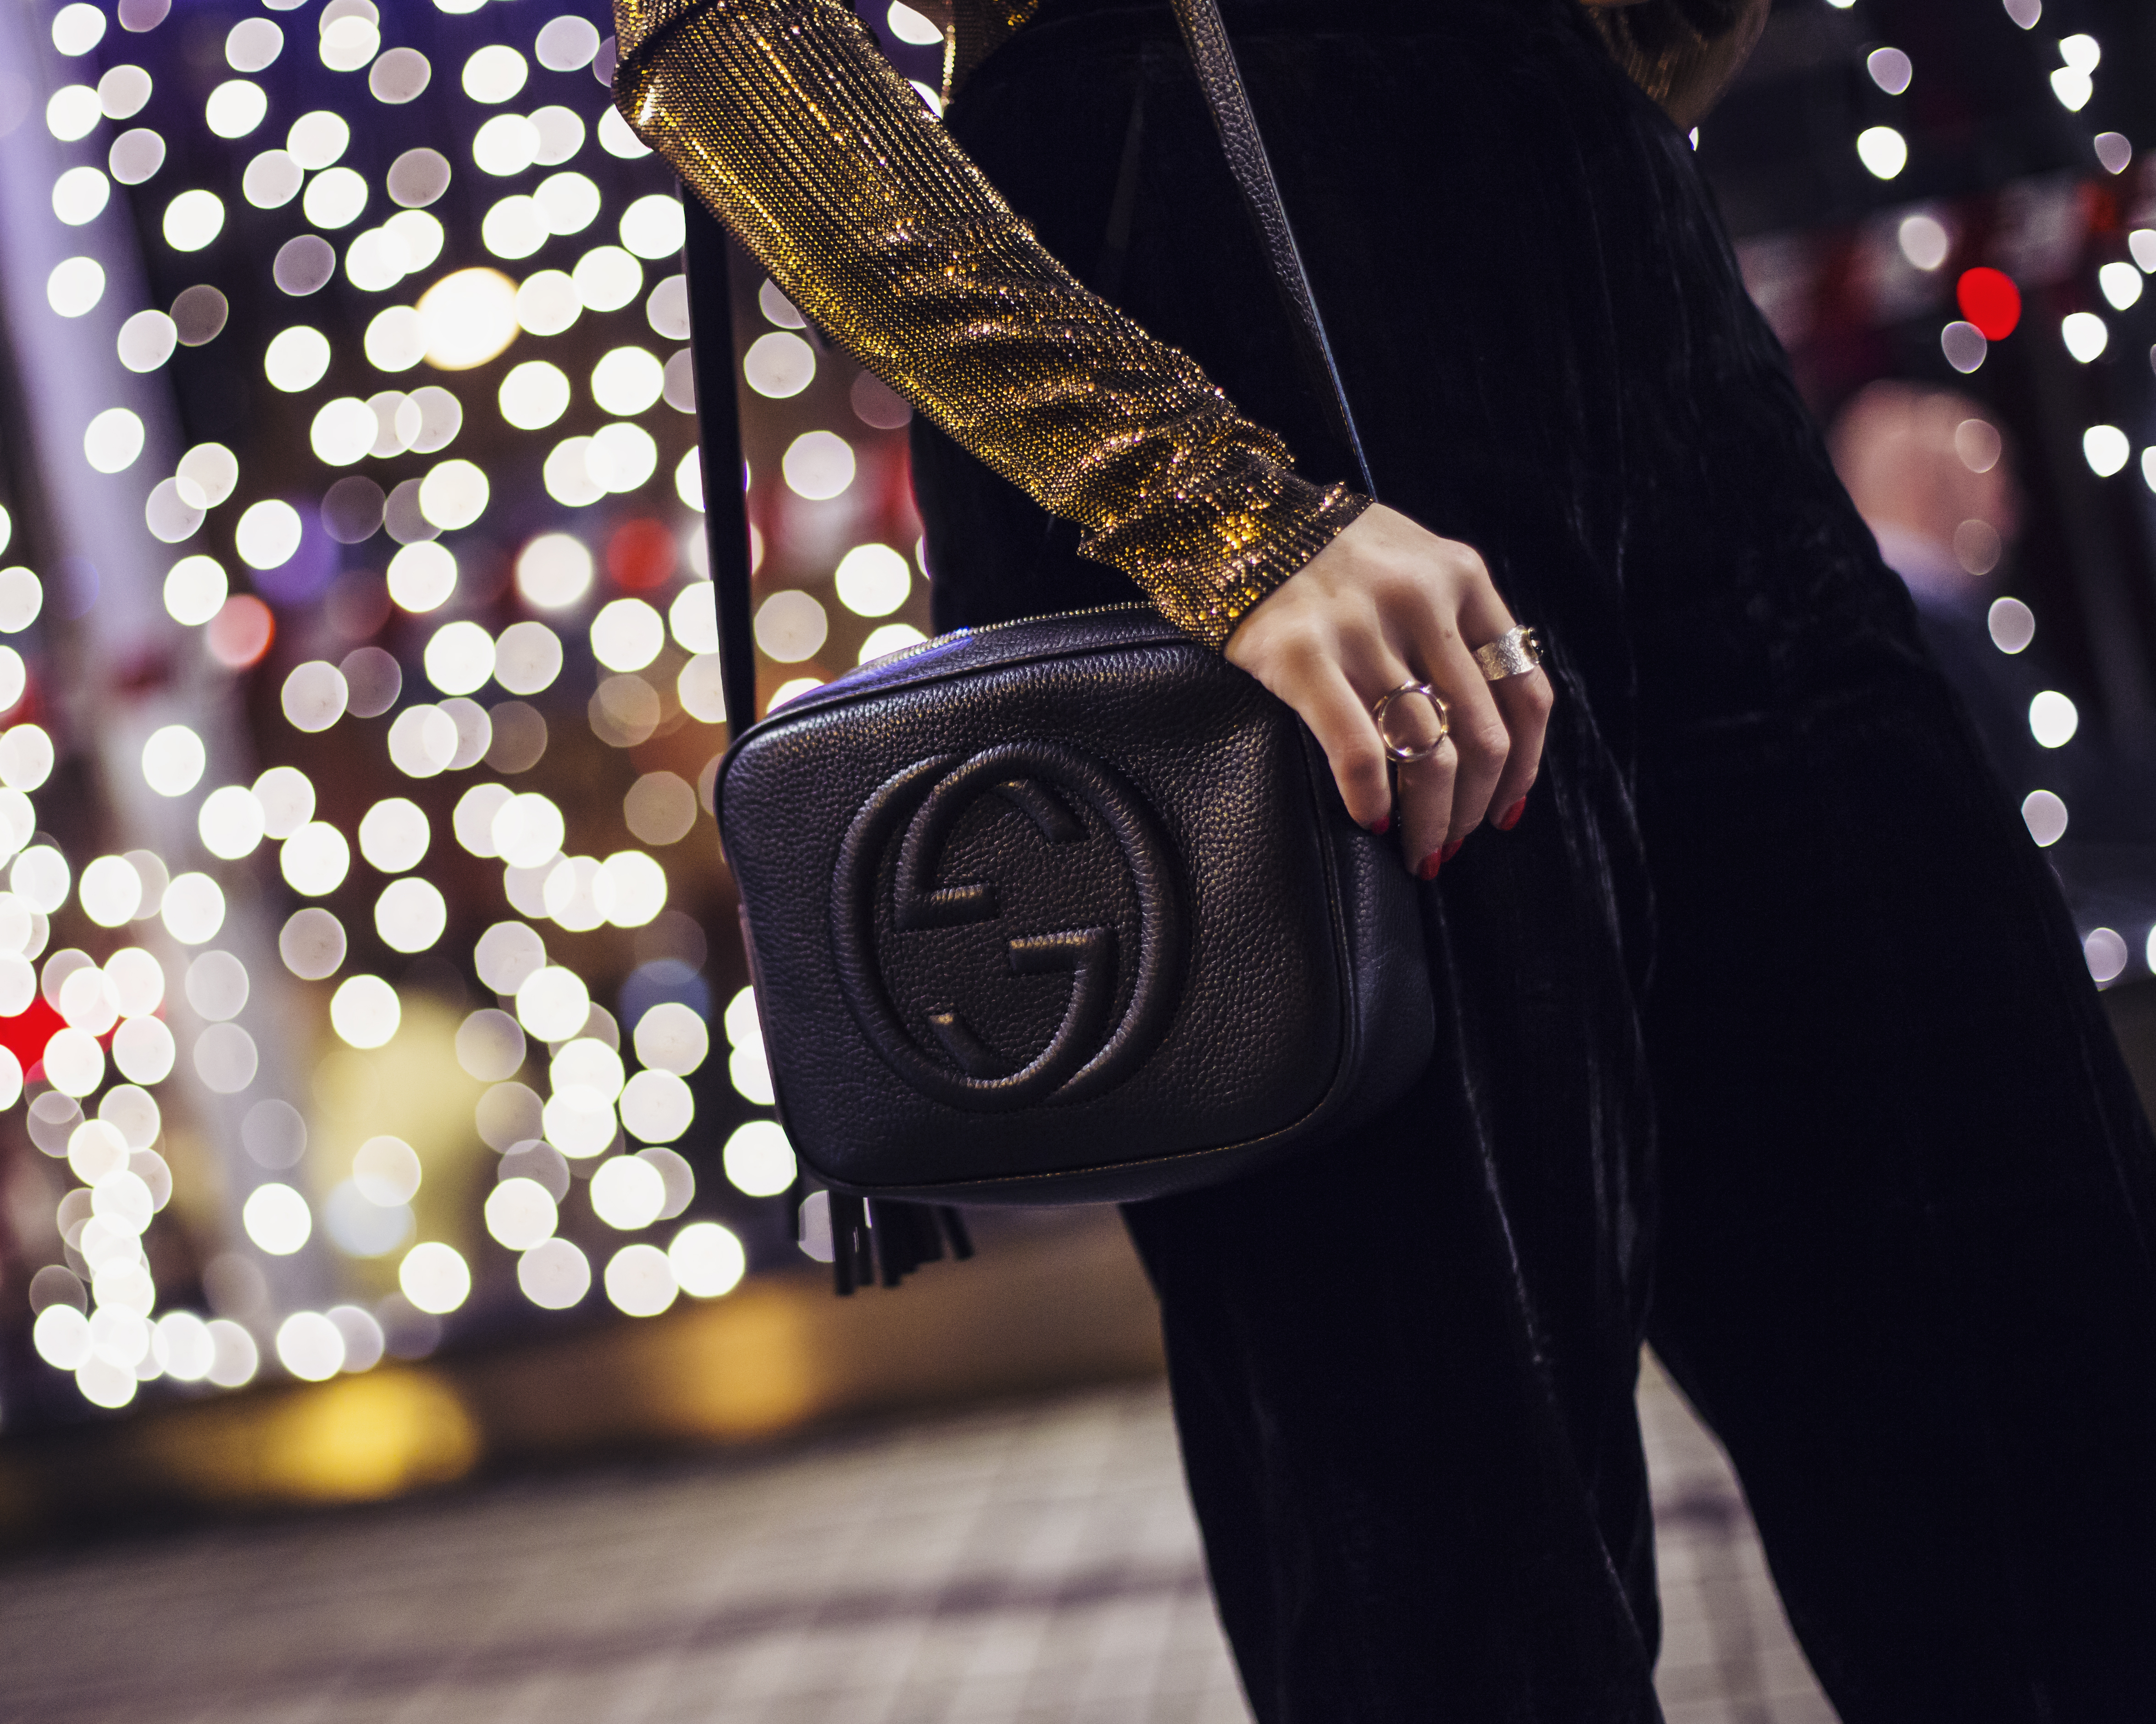 HOW TO STYLE THE GUCCI SOHO DISCO BAG